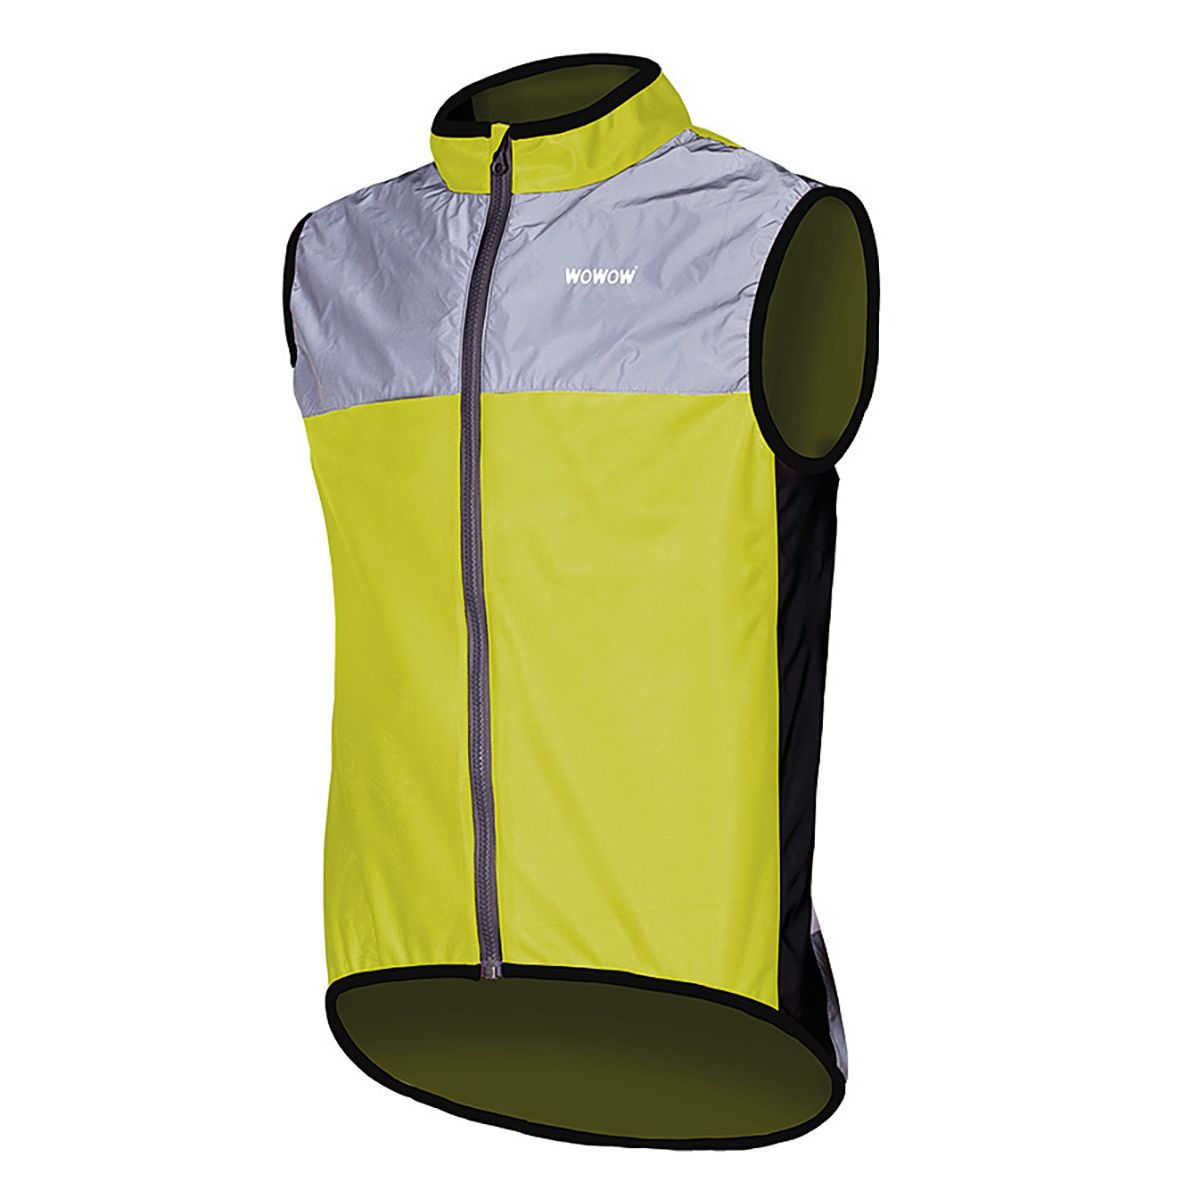 WOWOW DARK JACKET 1.1 YELLOW sports vest | Veste